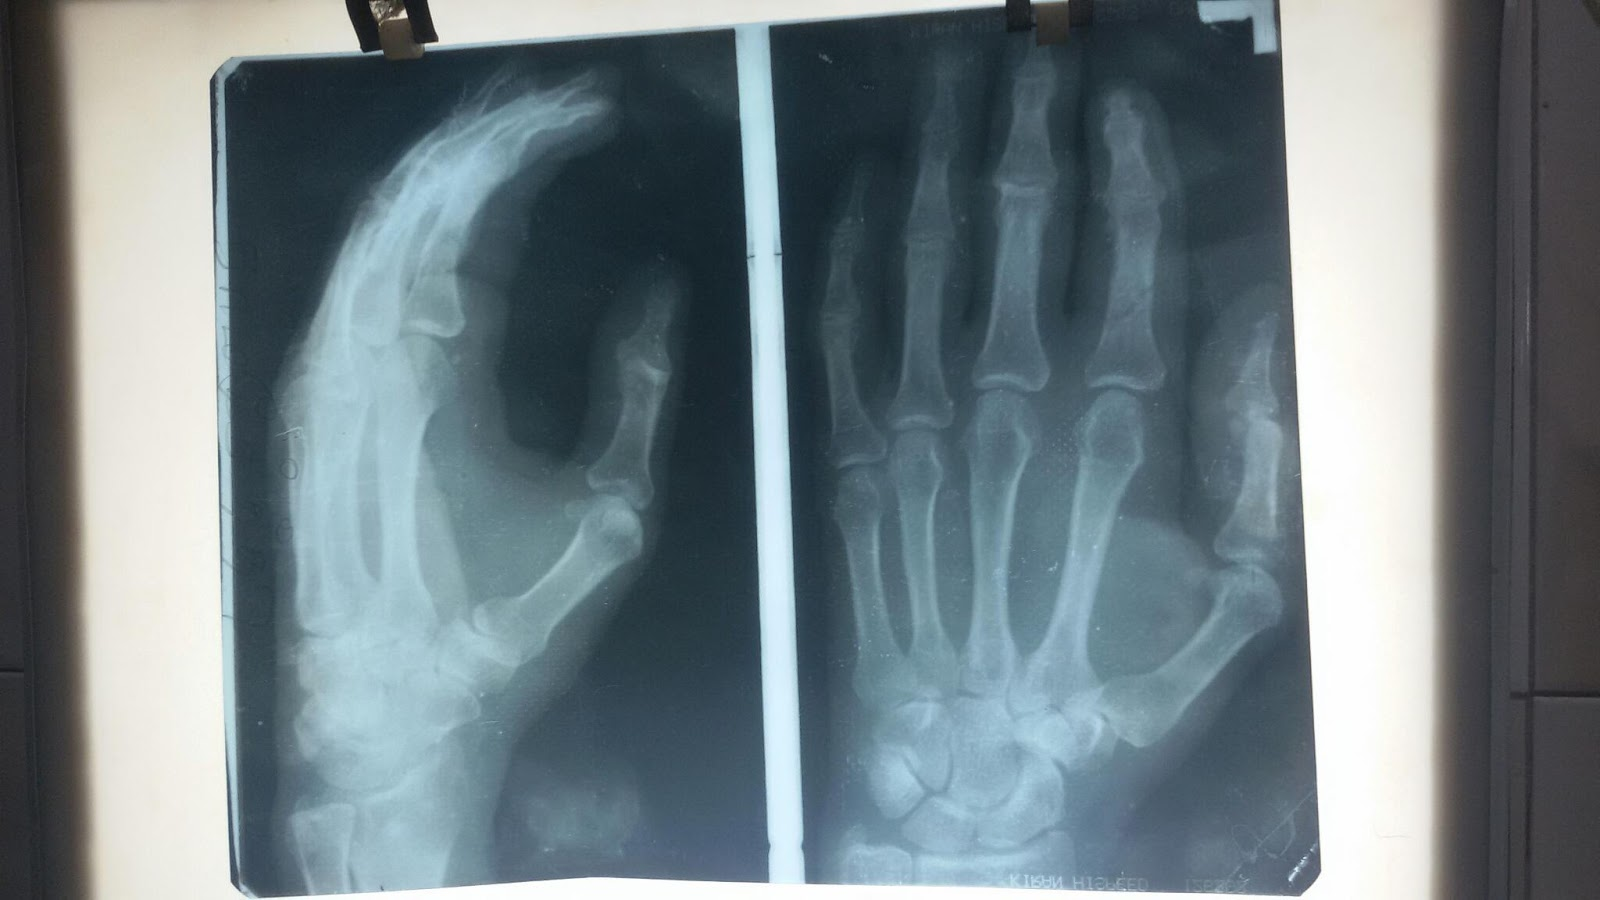 VIDHUNS PLASTIC SURGERY AND COSMETIC WORLD: Post op xray